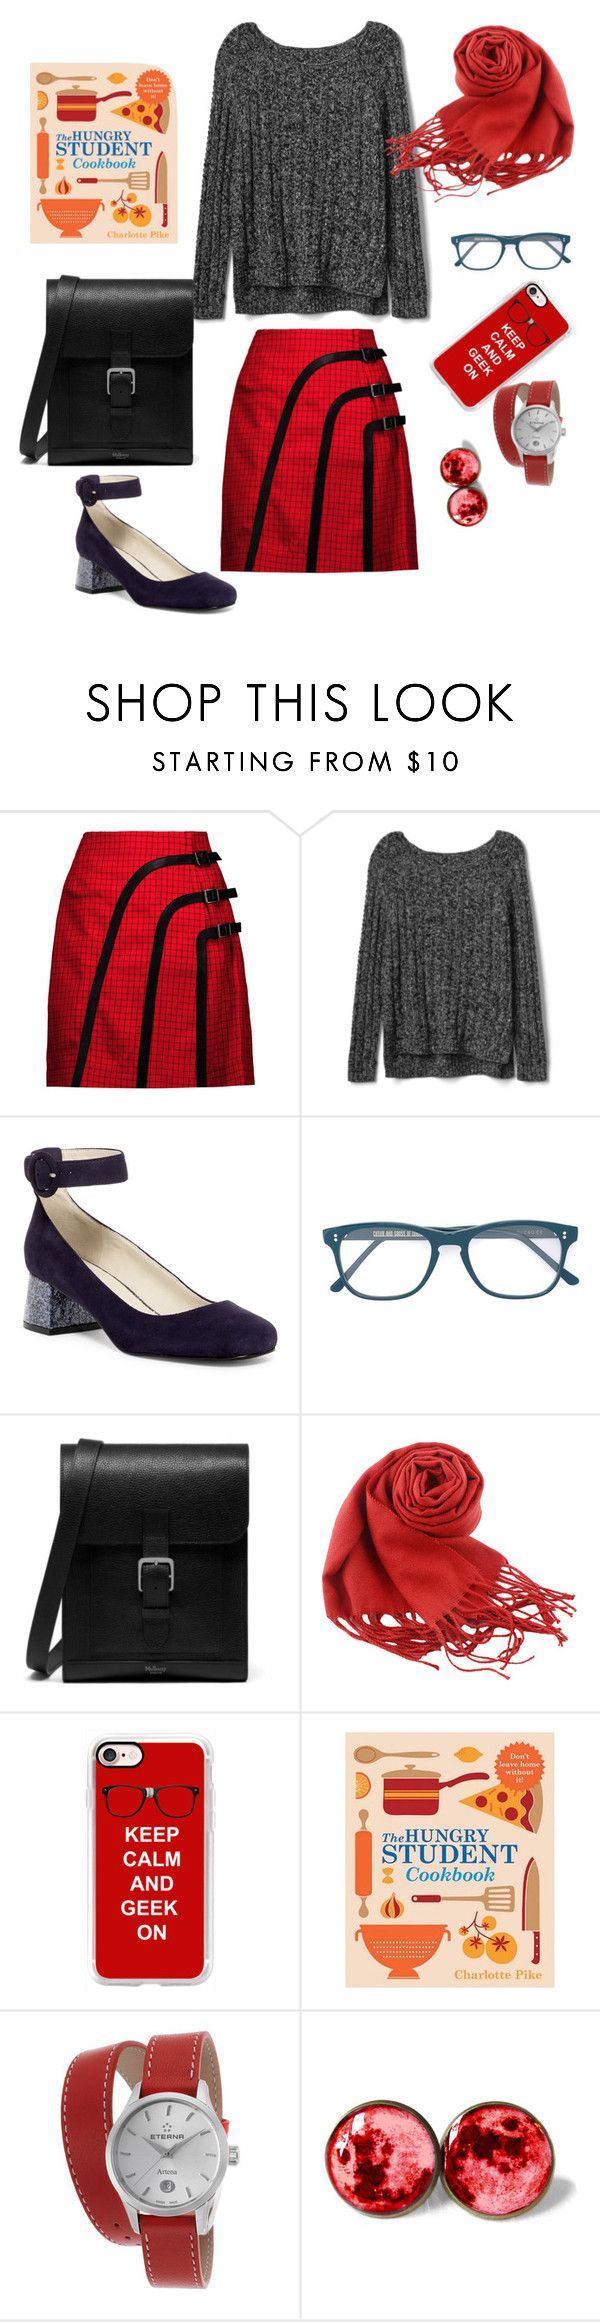 """""""Untitled #440"""" by maritabirken ❤ liked on Polyvore featuring J.W. Anderson, Gap, Nine West, Cutler and Gross, Mulberry, Casetify and Eterna"""